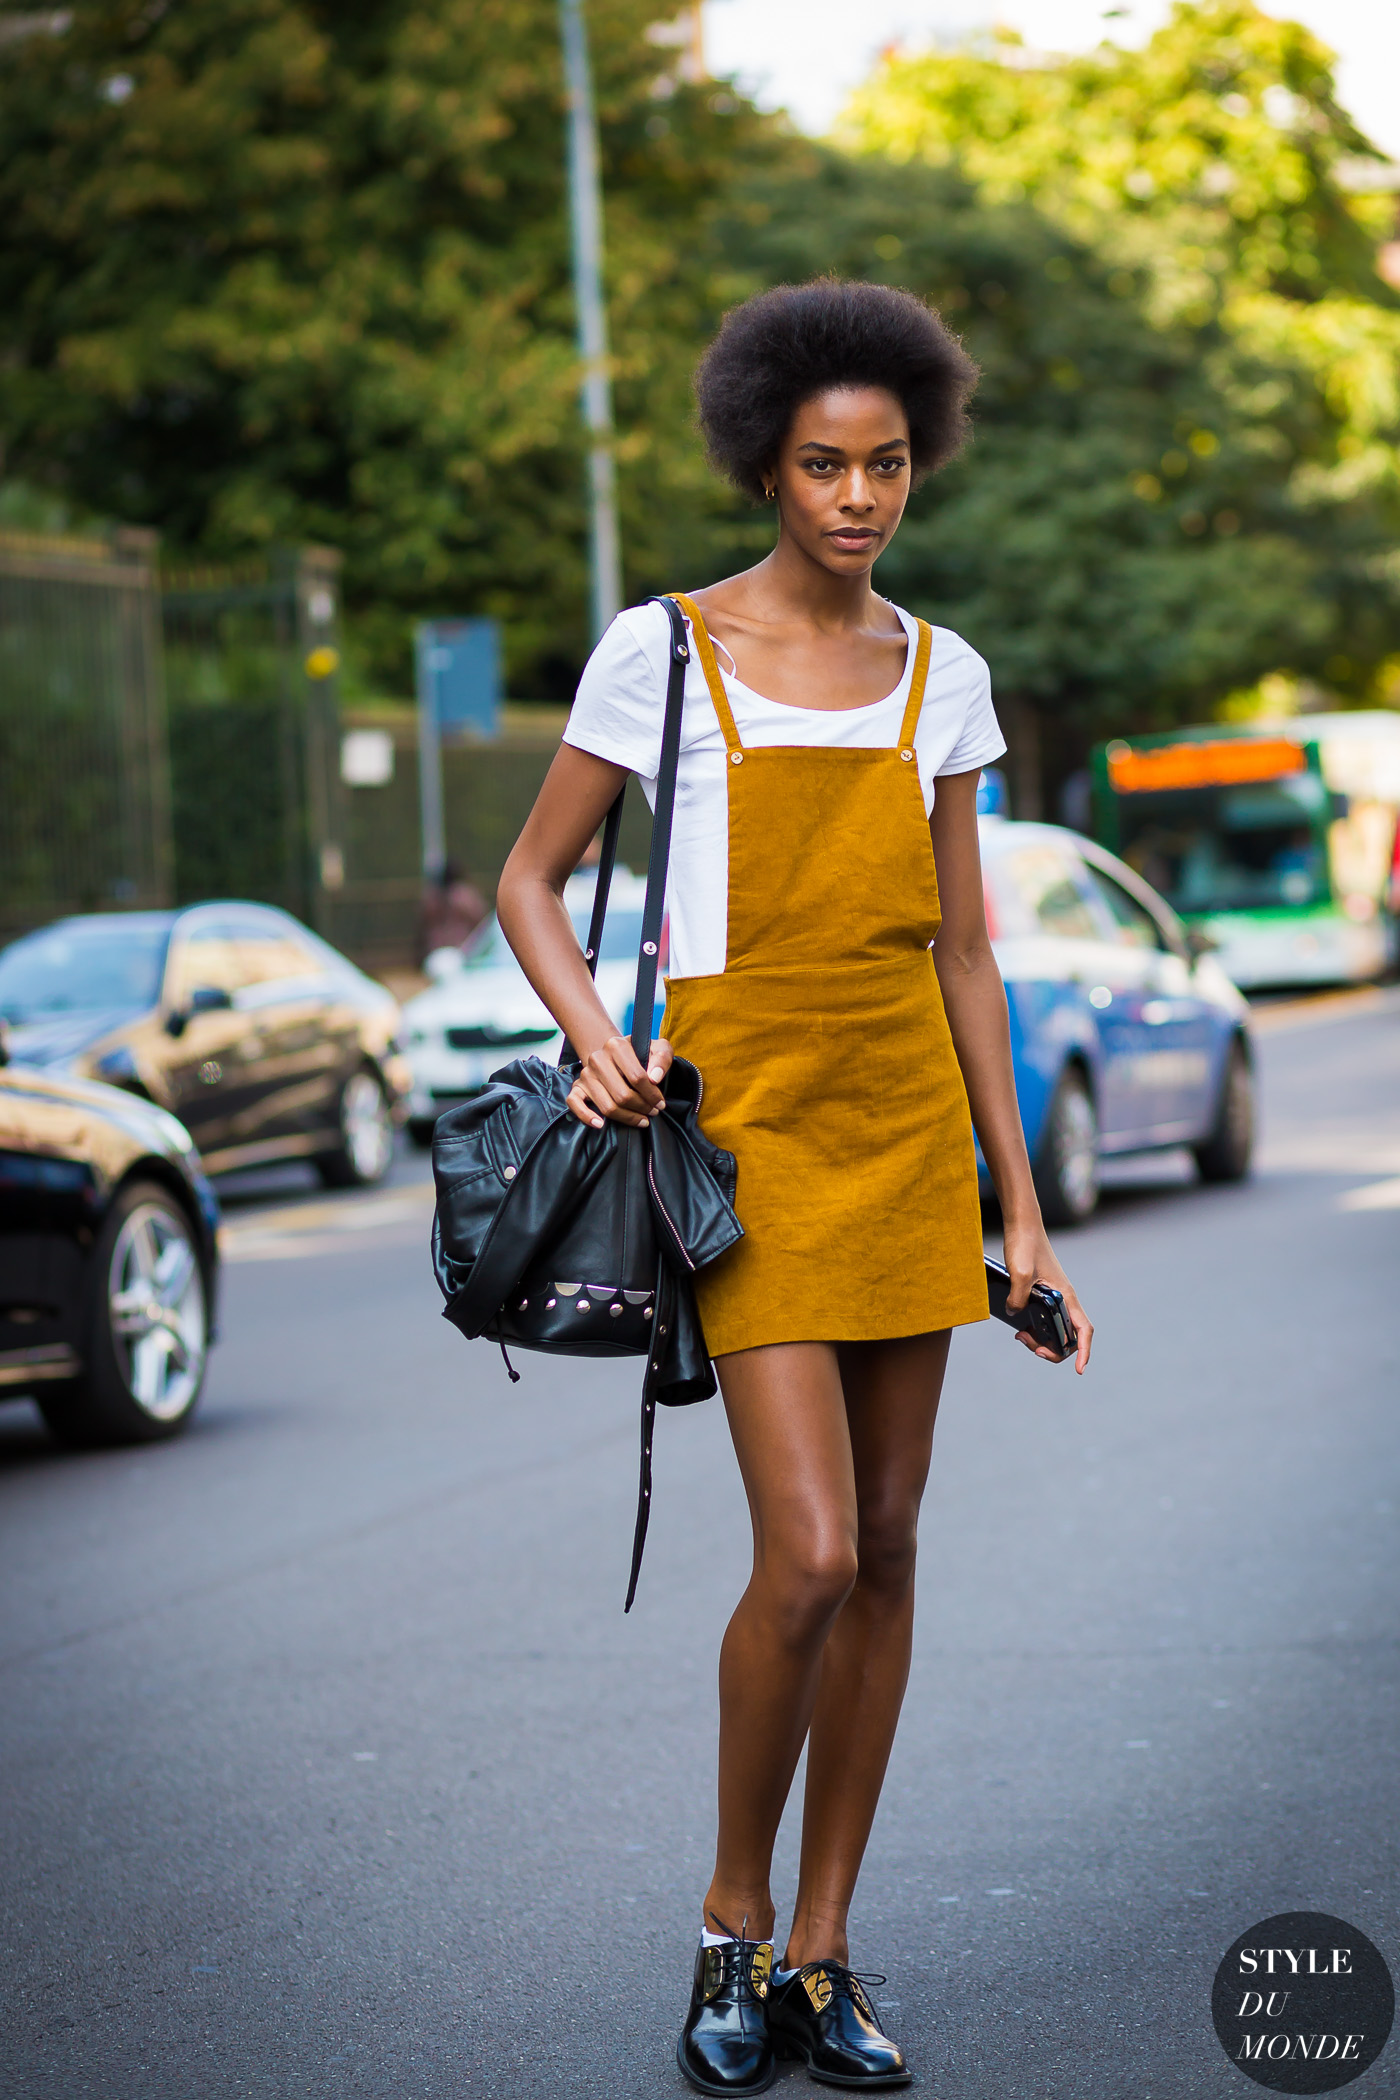 Karly Loyce Street Style Street Fashion Streetsnaps by STYLEDUMONDE Street Style Fashion Photography